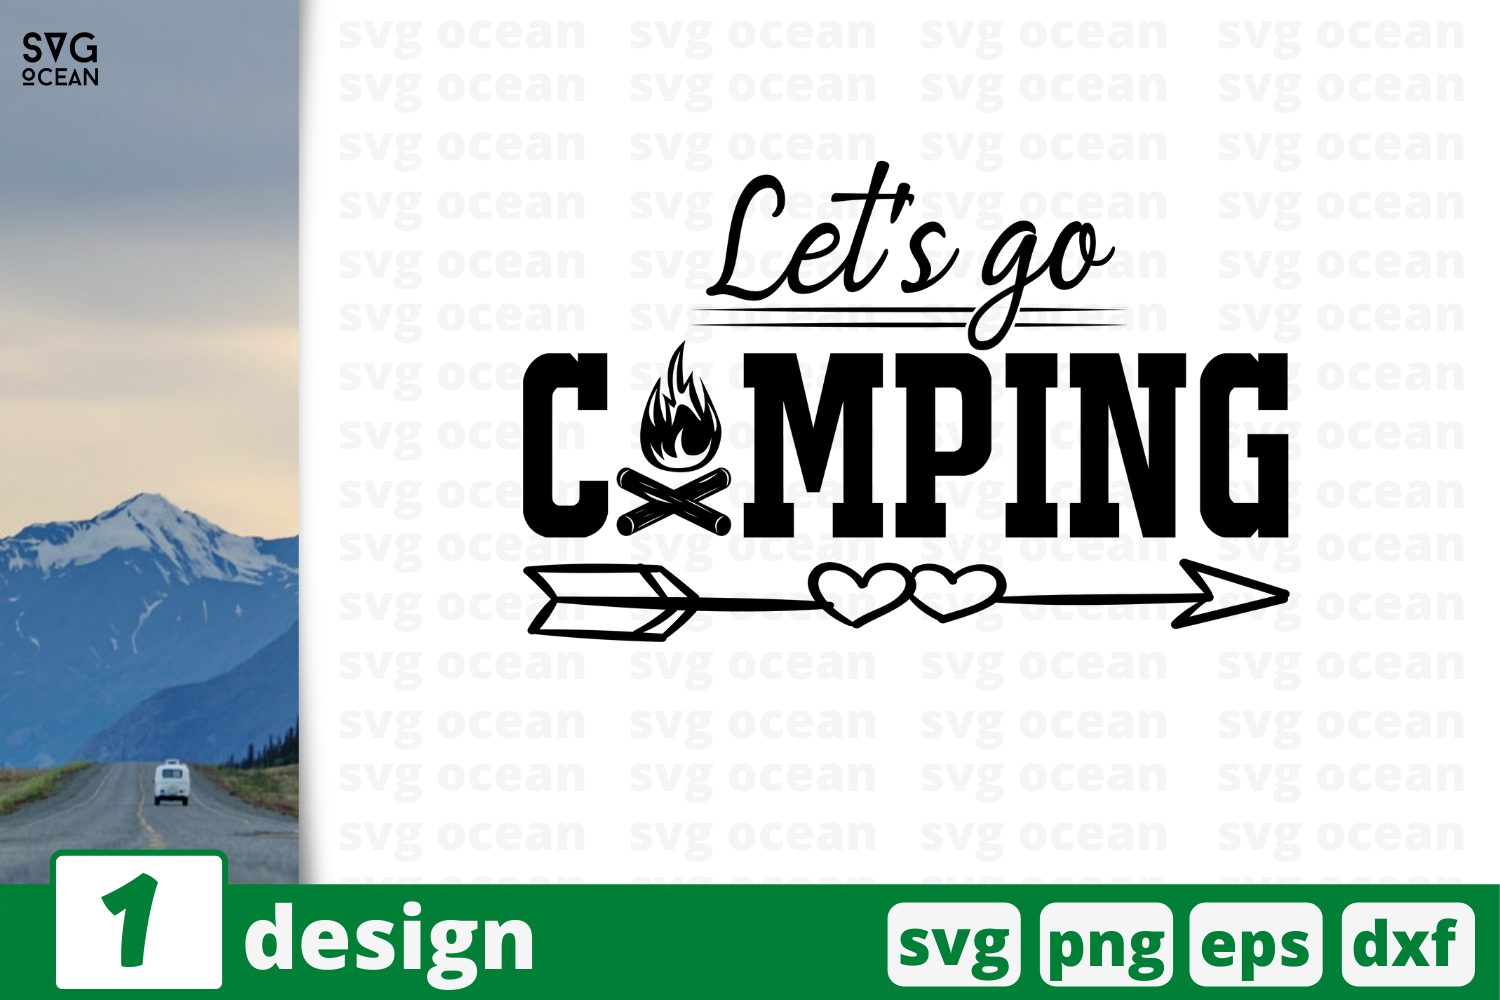 Download Free Let S Go Camping Graphic By Svgocean Creative Fabrica SVG Cut Files